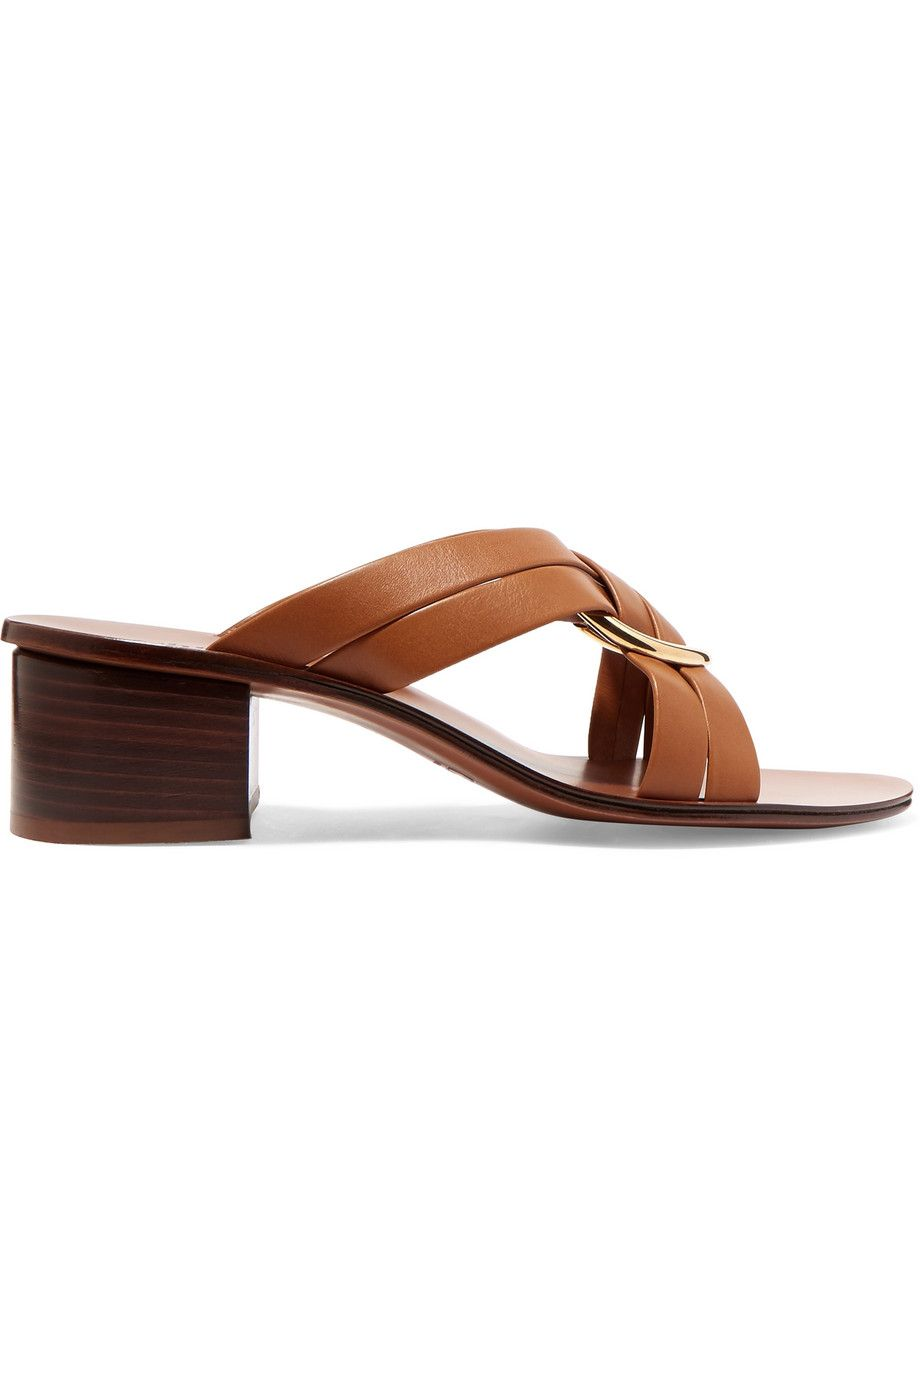 Rony Embellished Leather Mules Chloé net-a-porter.com $690.00 SHOP NOW Crisscross straps and a polished gold ring give this versatile stacked sandal an elevated twist.